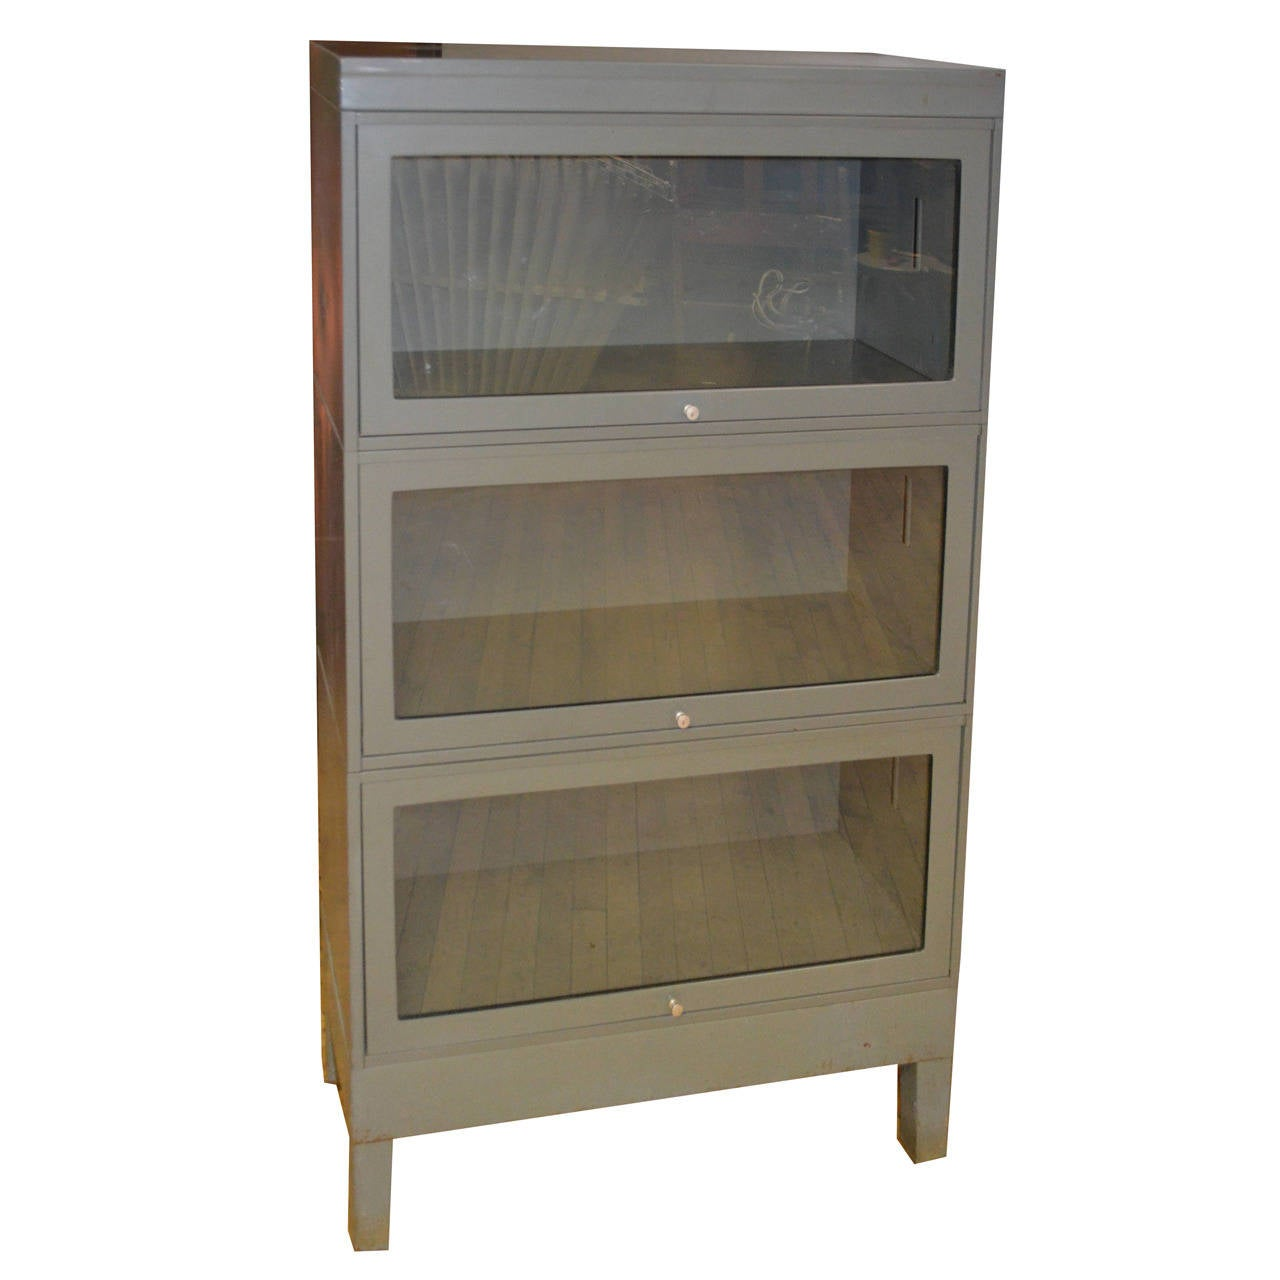 Barrister ThreeSection Steel Storage File Cabinet